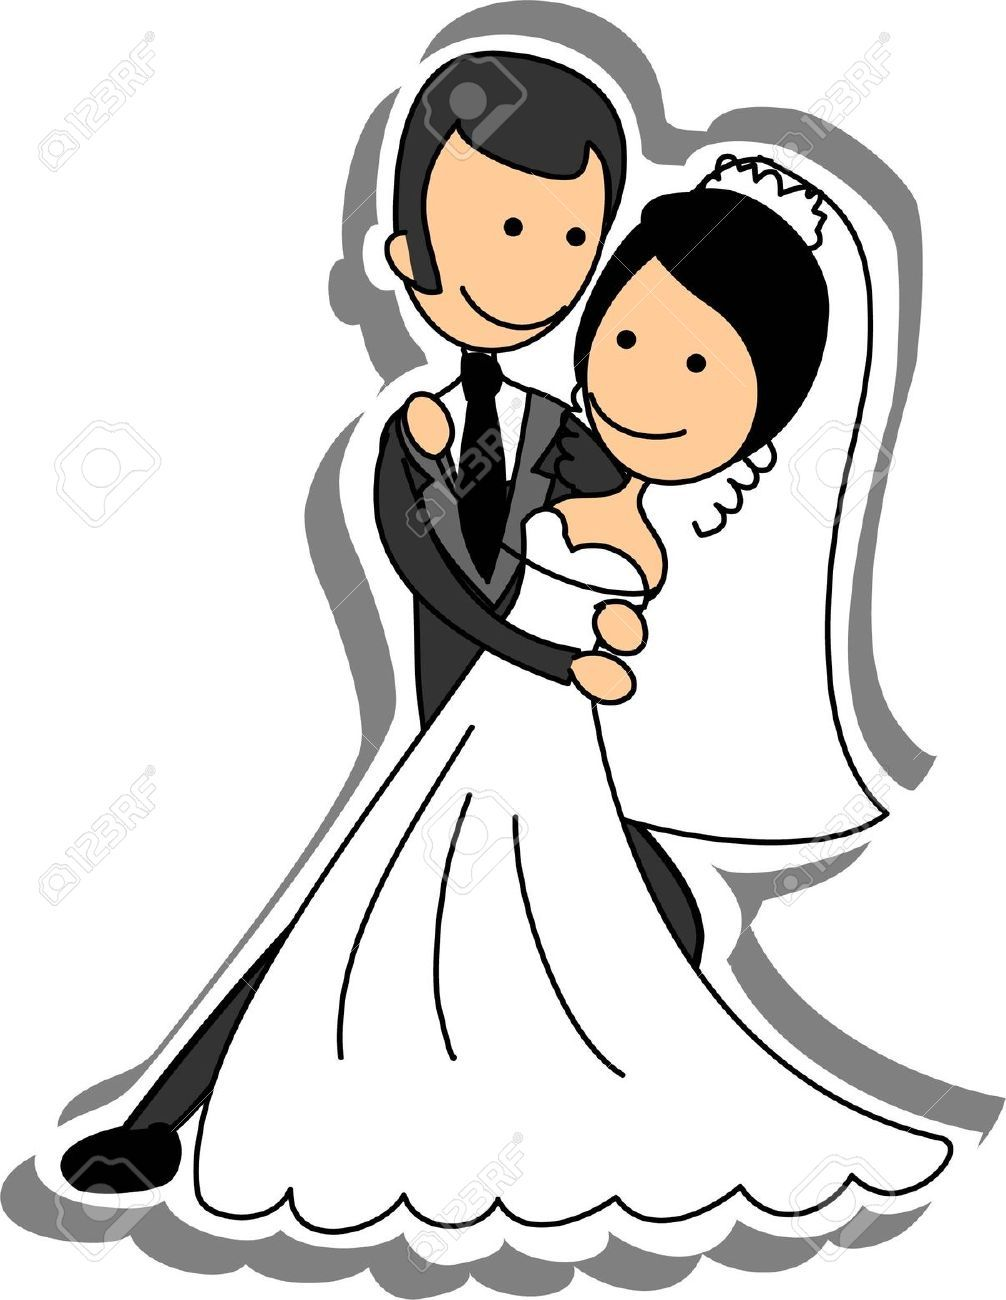 hight resolution of wedding picture bride and groom in love royalty free cliparts